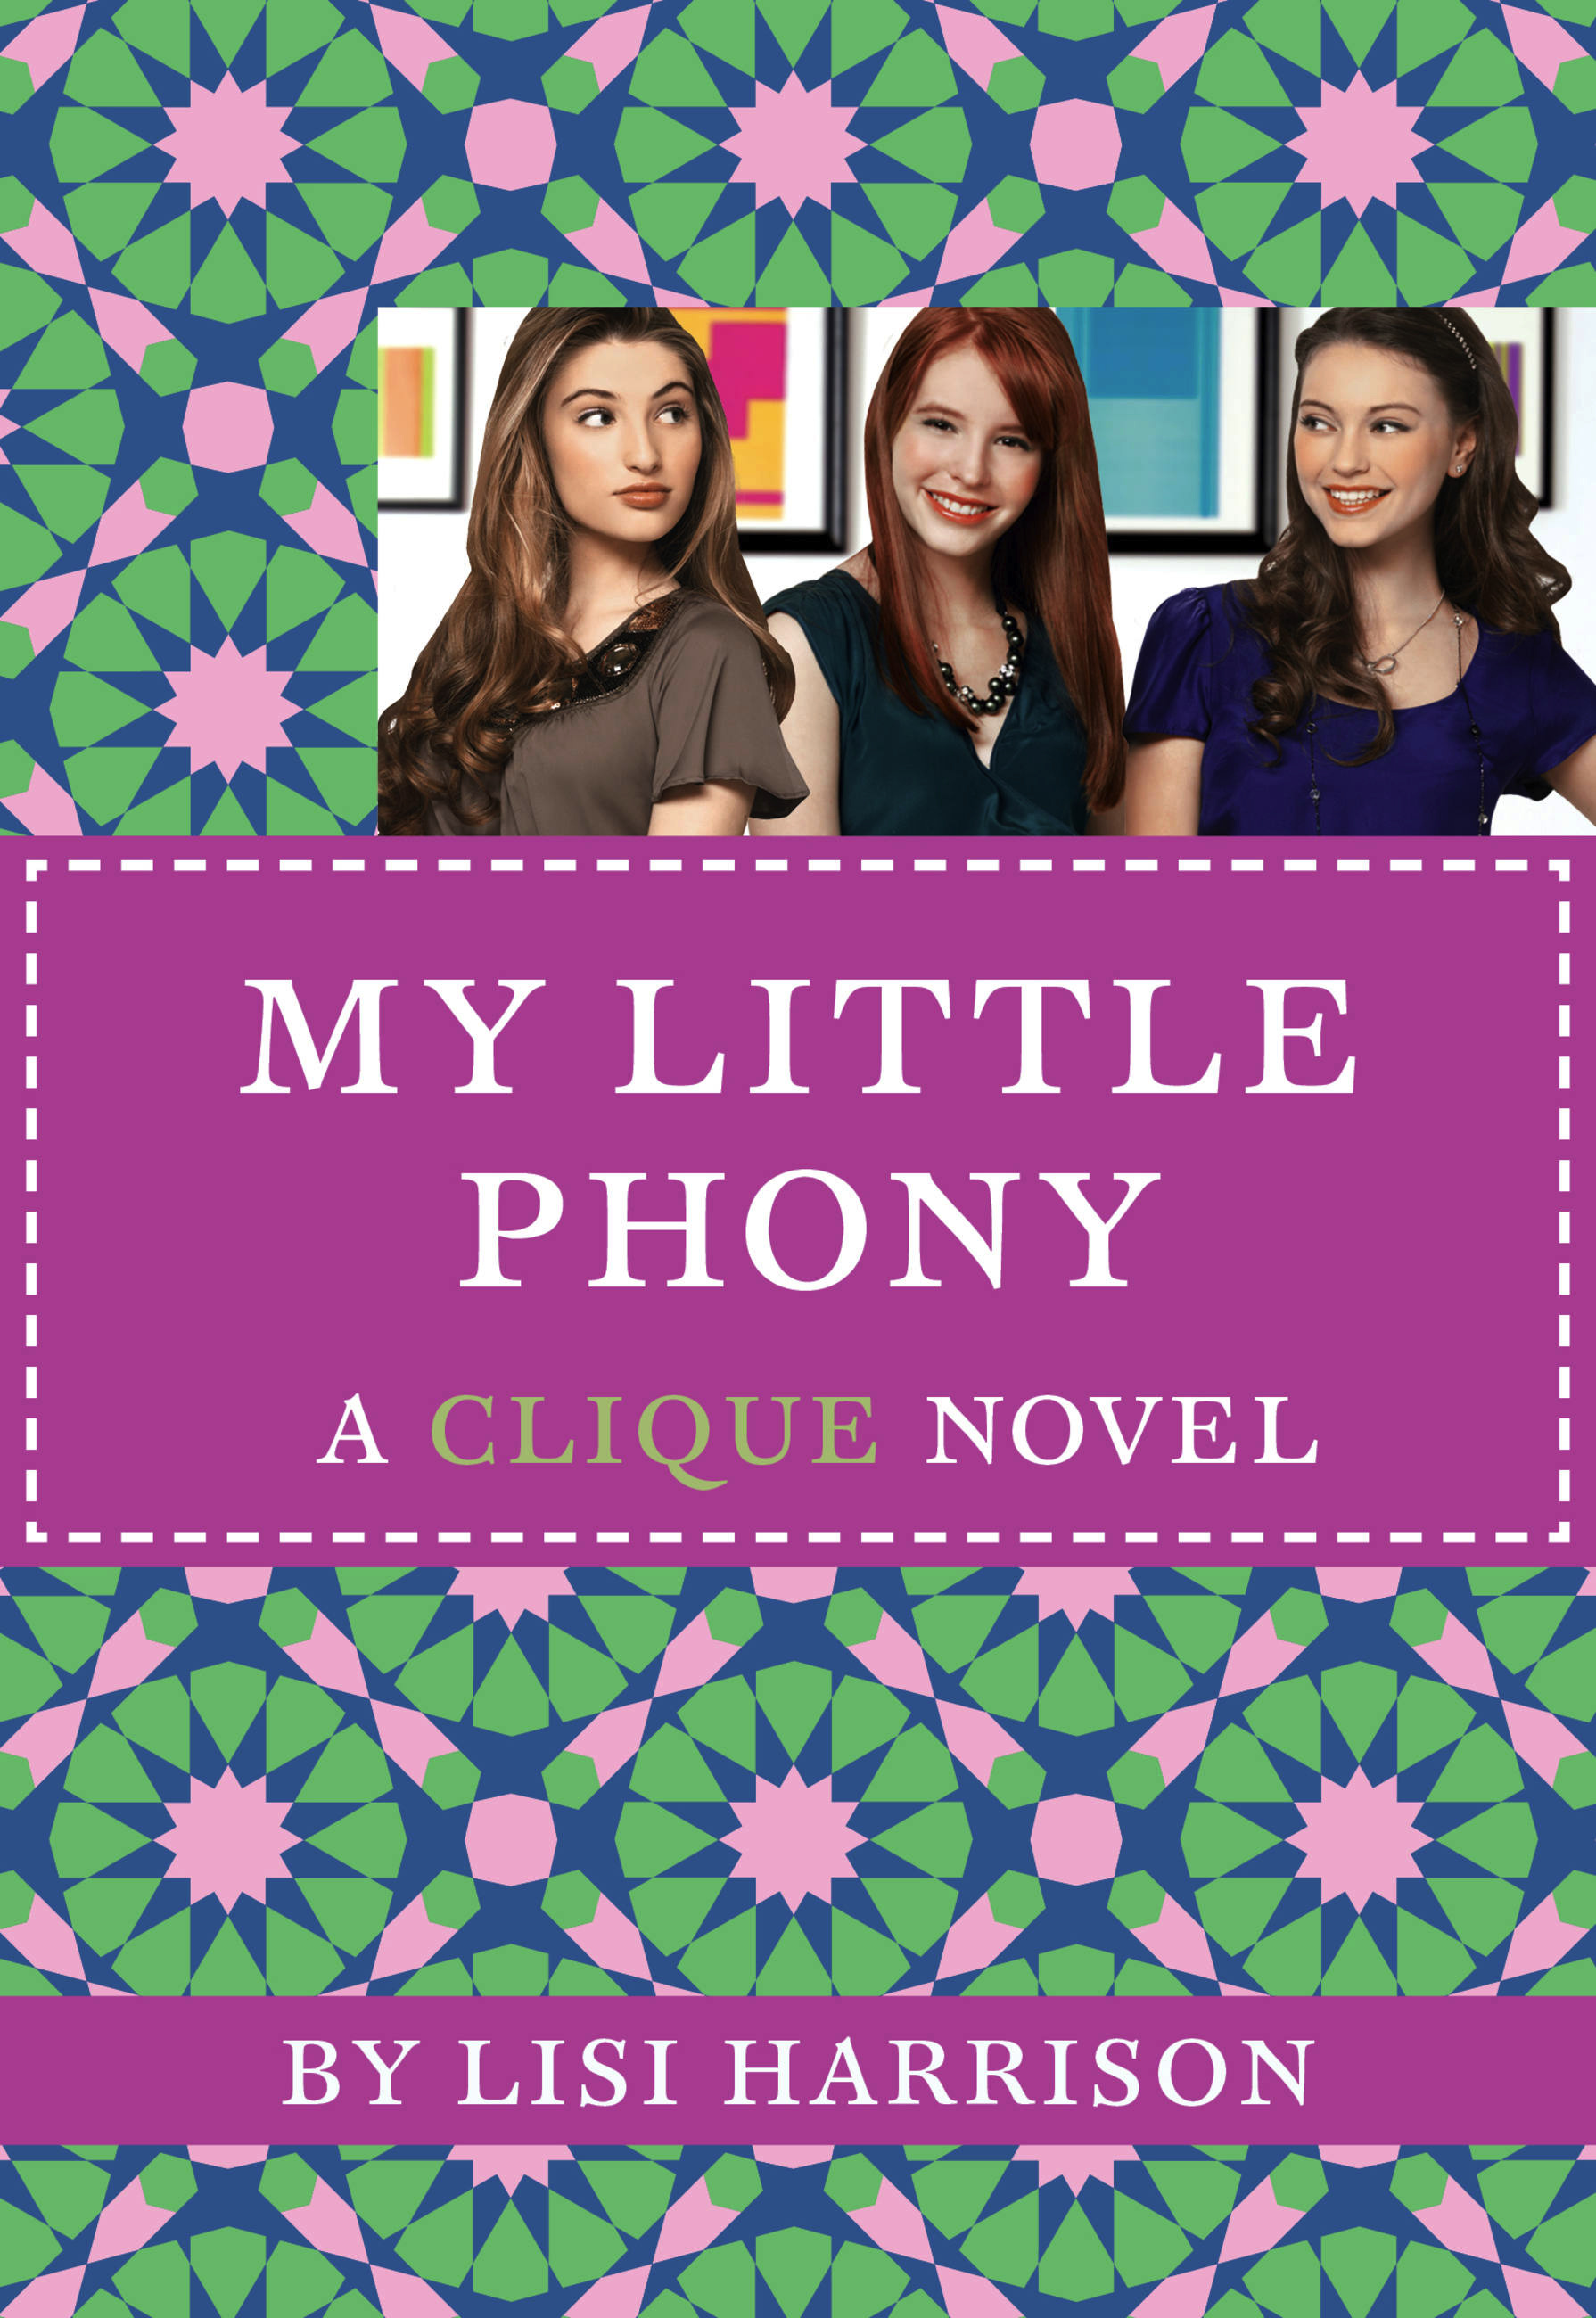 The Clique #13: My Little Phony by Lisi Harrison ...